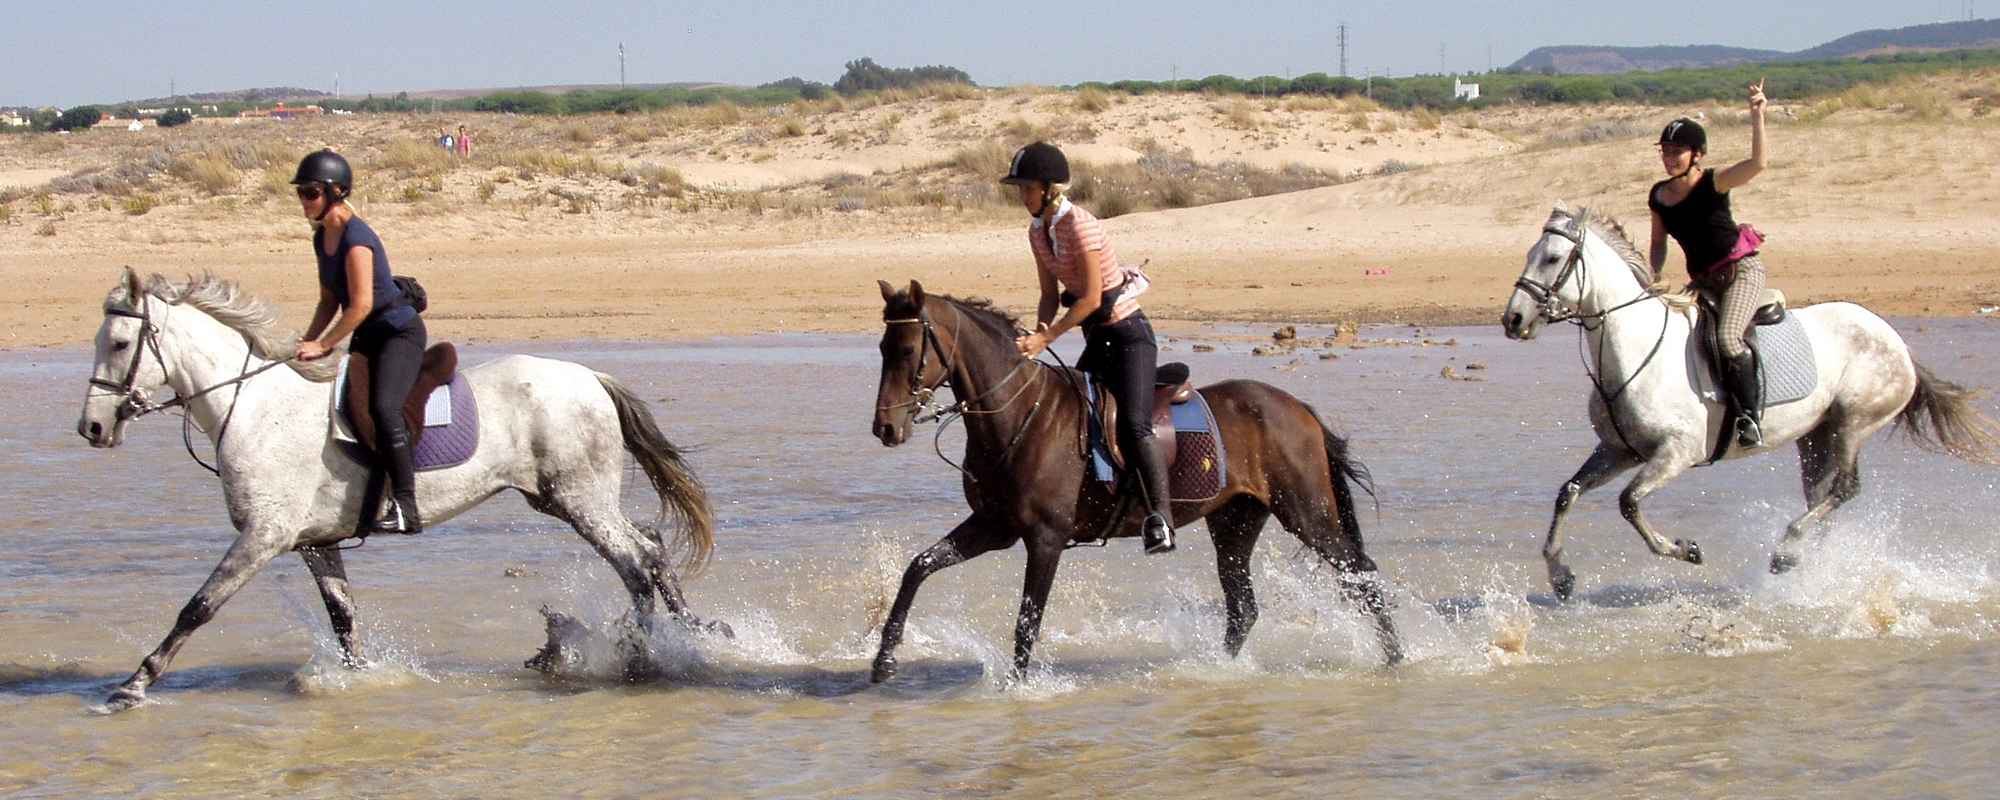 Unspoilt beaches for horse riding holidays